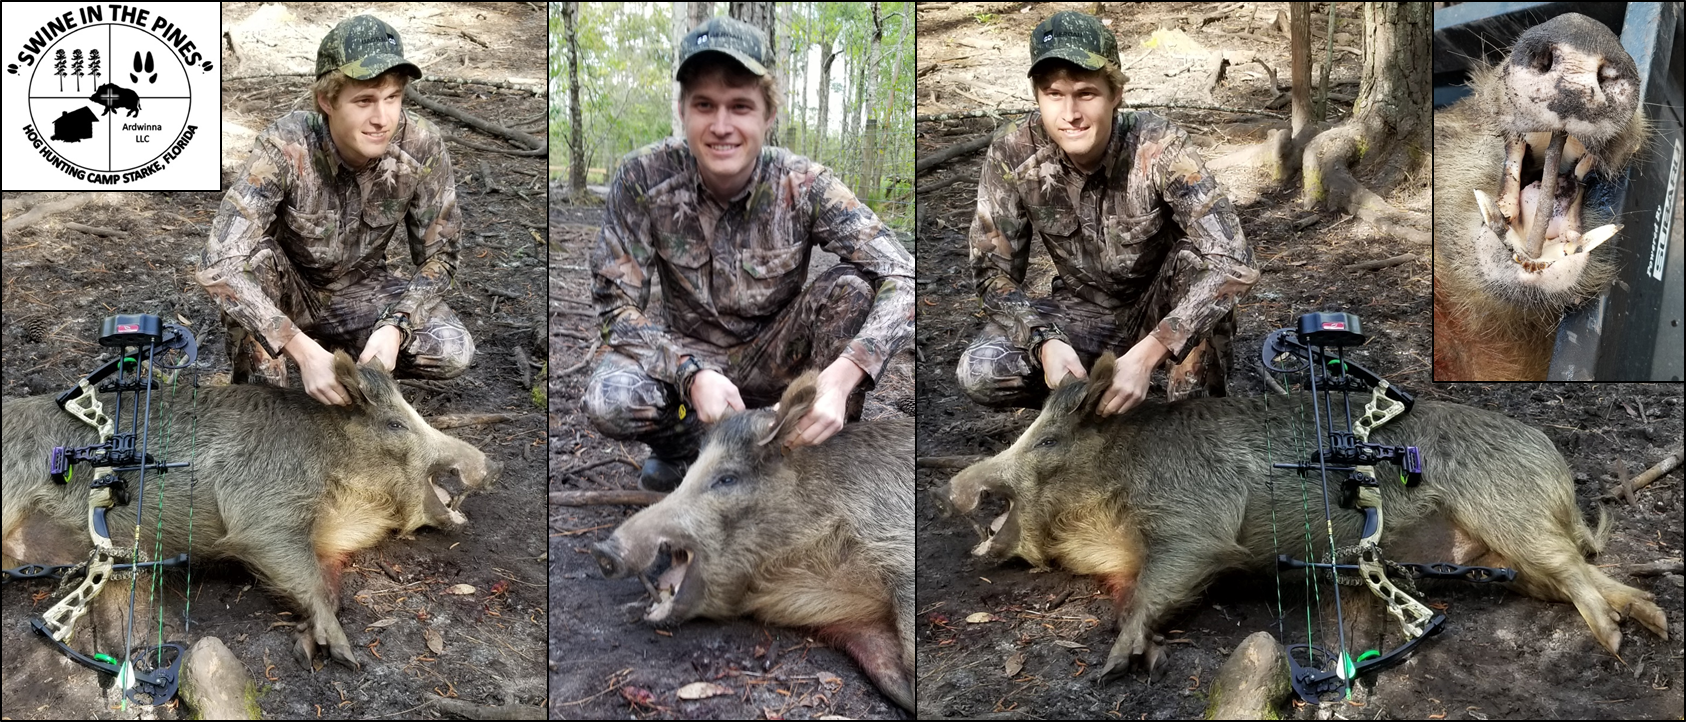 Andrew with this nice Wild Hog look at those cutters taken at Swine In The Pines Hog Hunting Camp in Northeast Florida